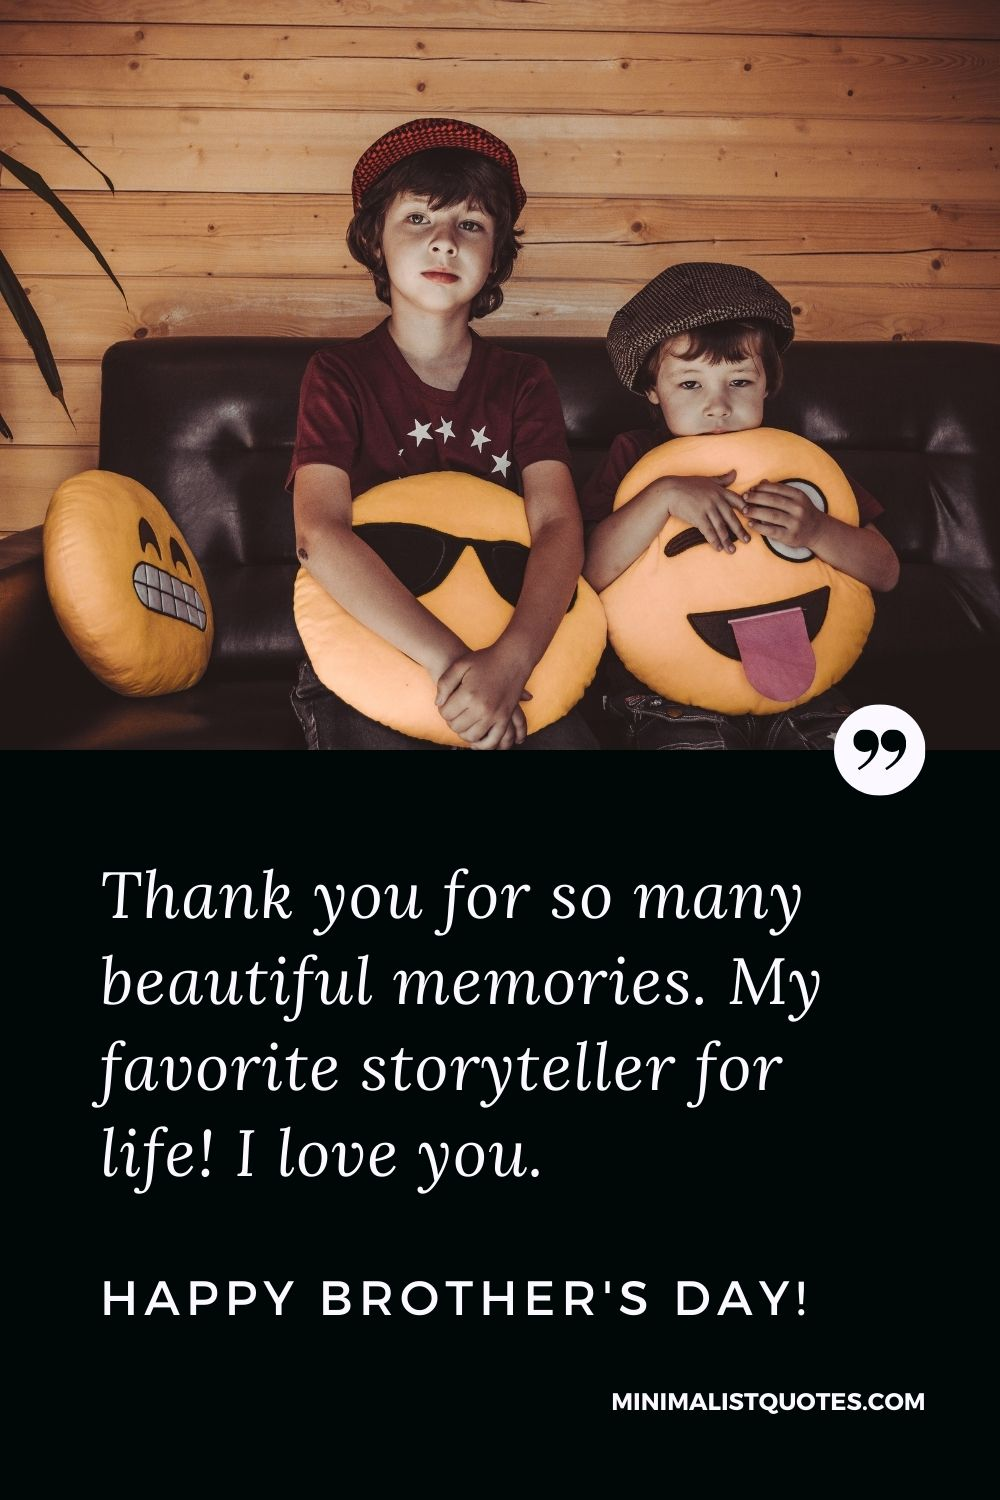 Brother's Day Quote, Wish & Message With Image: Thank you for so many beautiful memories. My favorite storyteller for life! I love you. Happy Brother's Day!